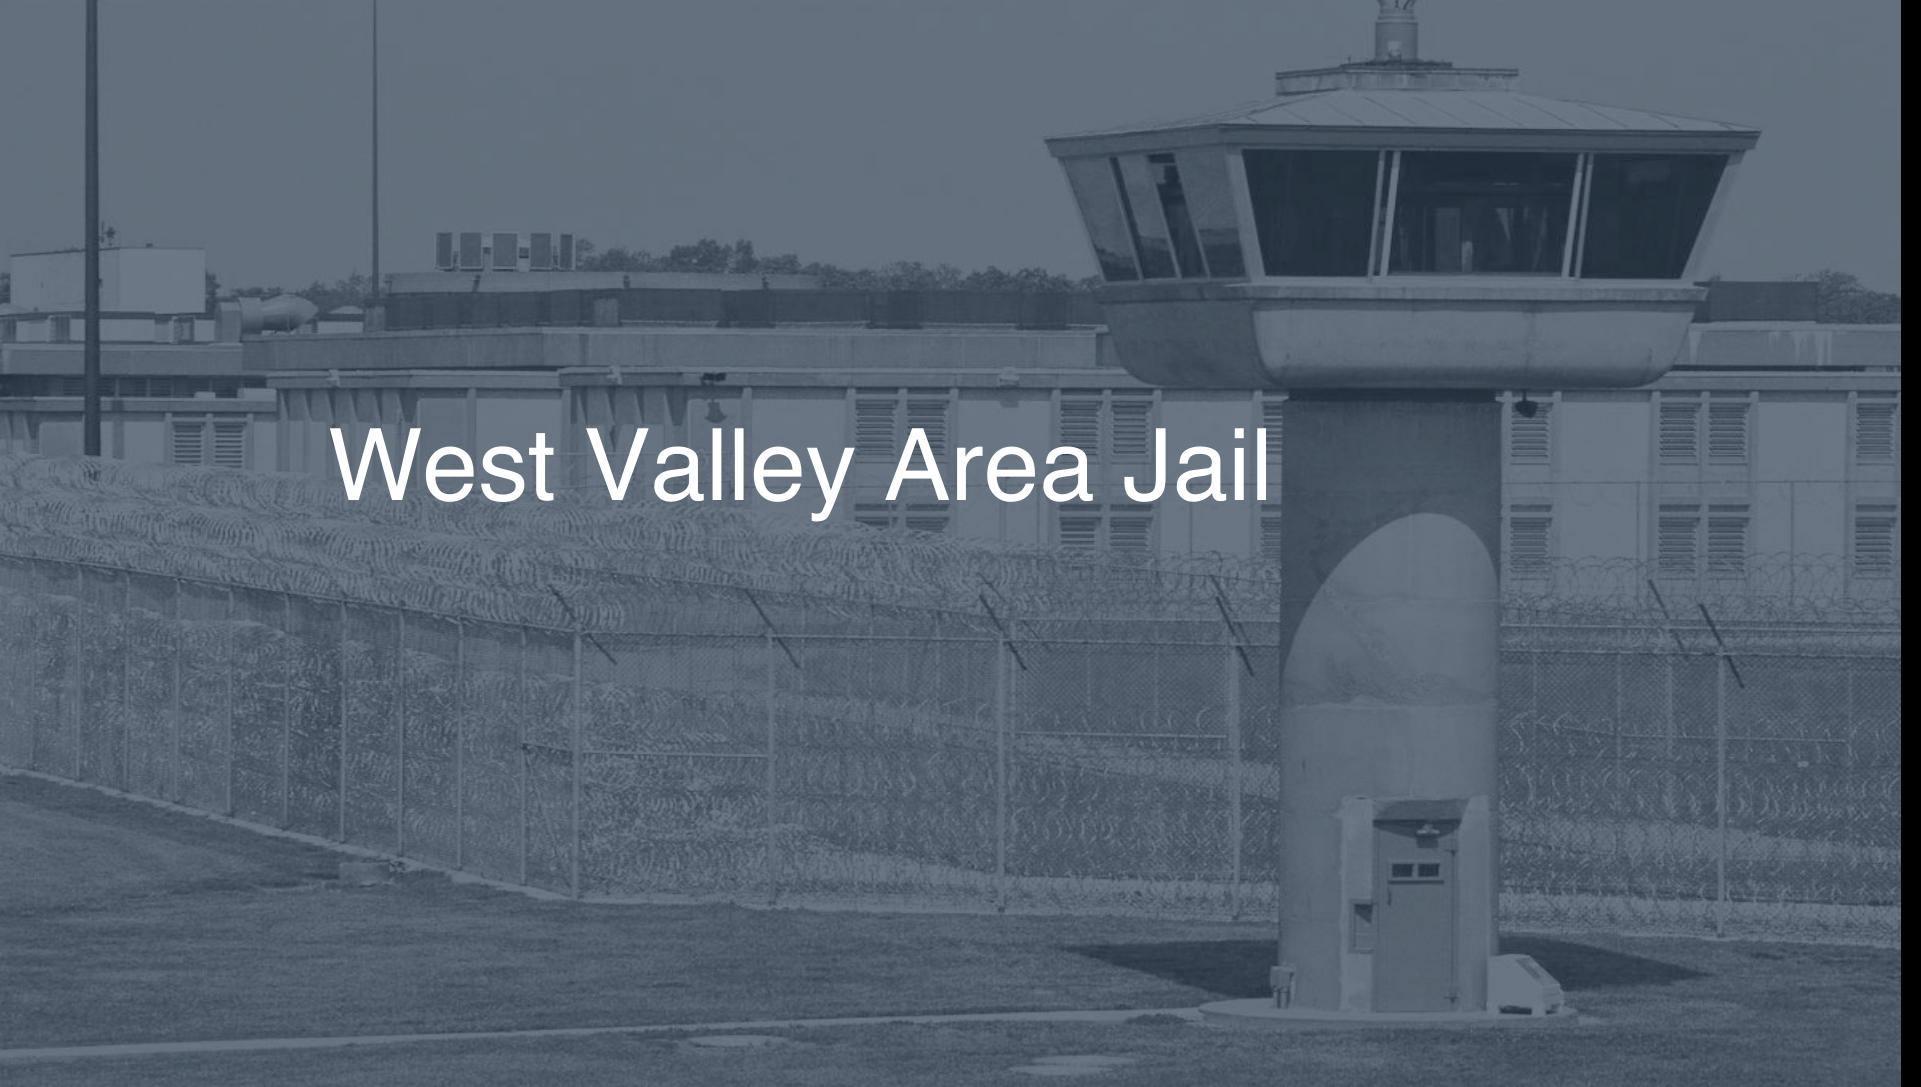 West Valley Area Jail correctional facility picture